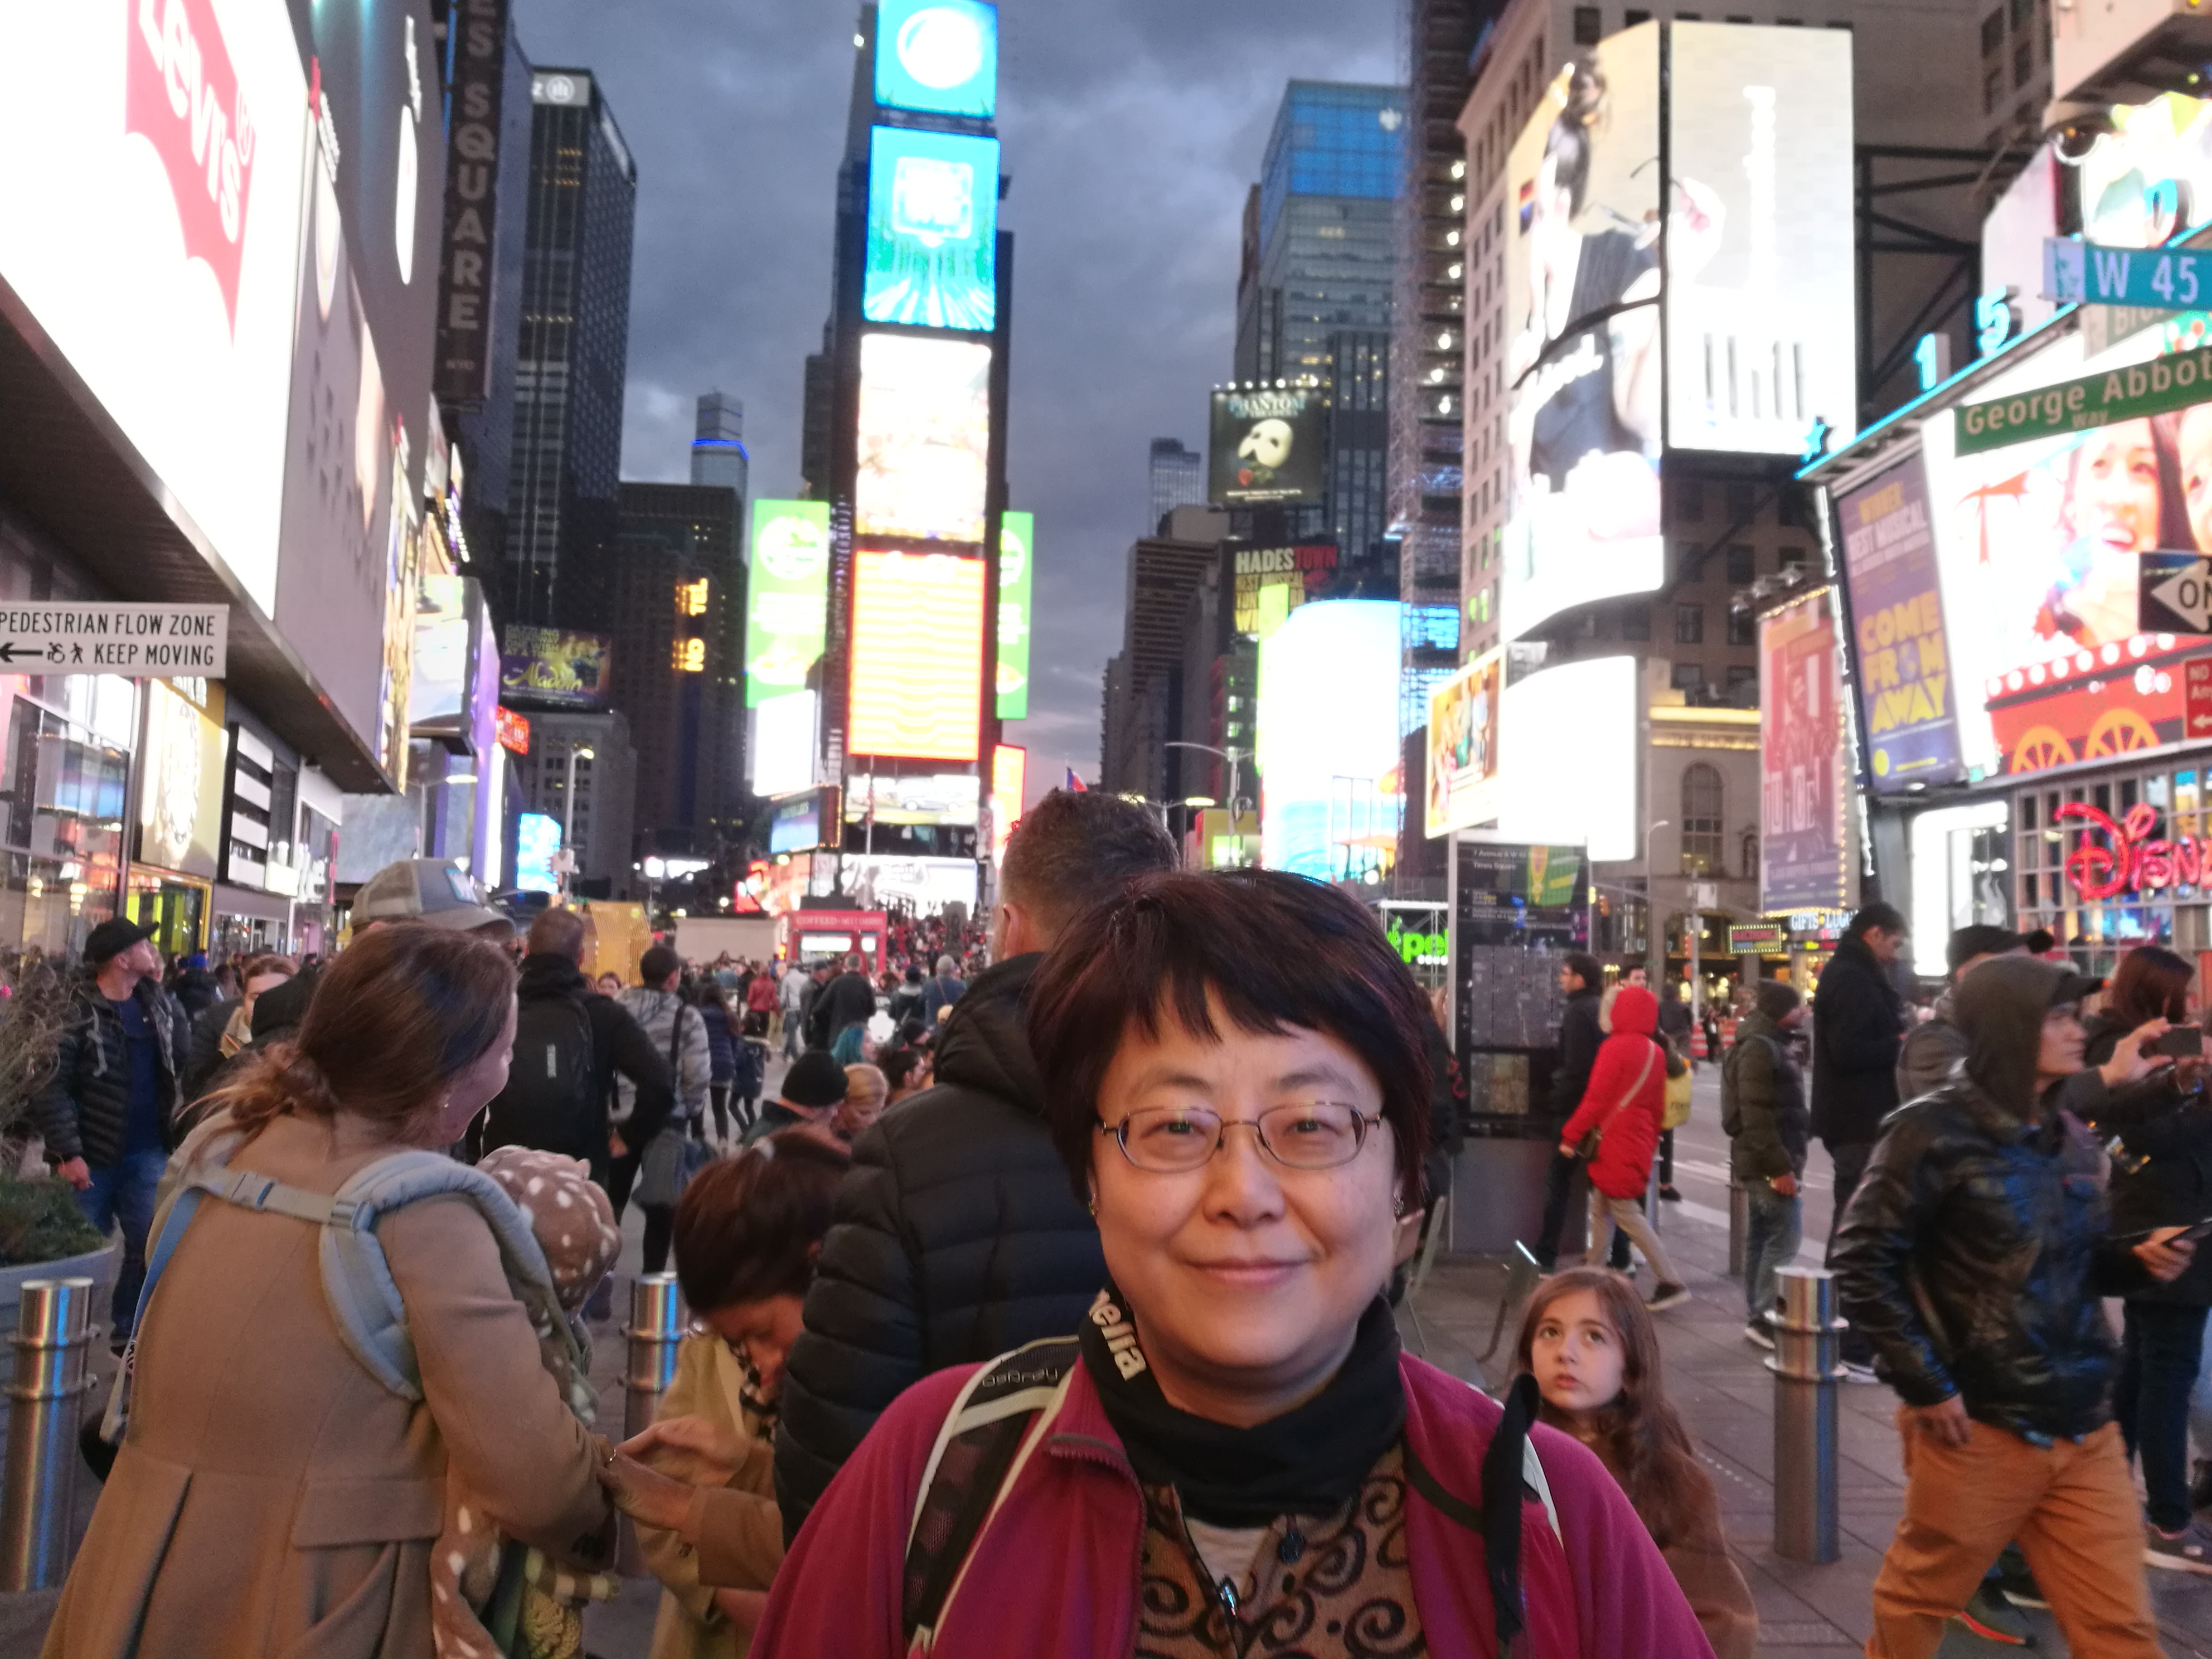 Me at Time Square